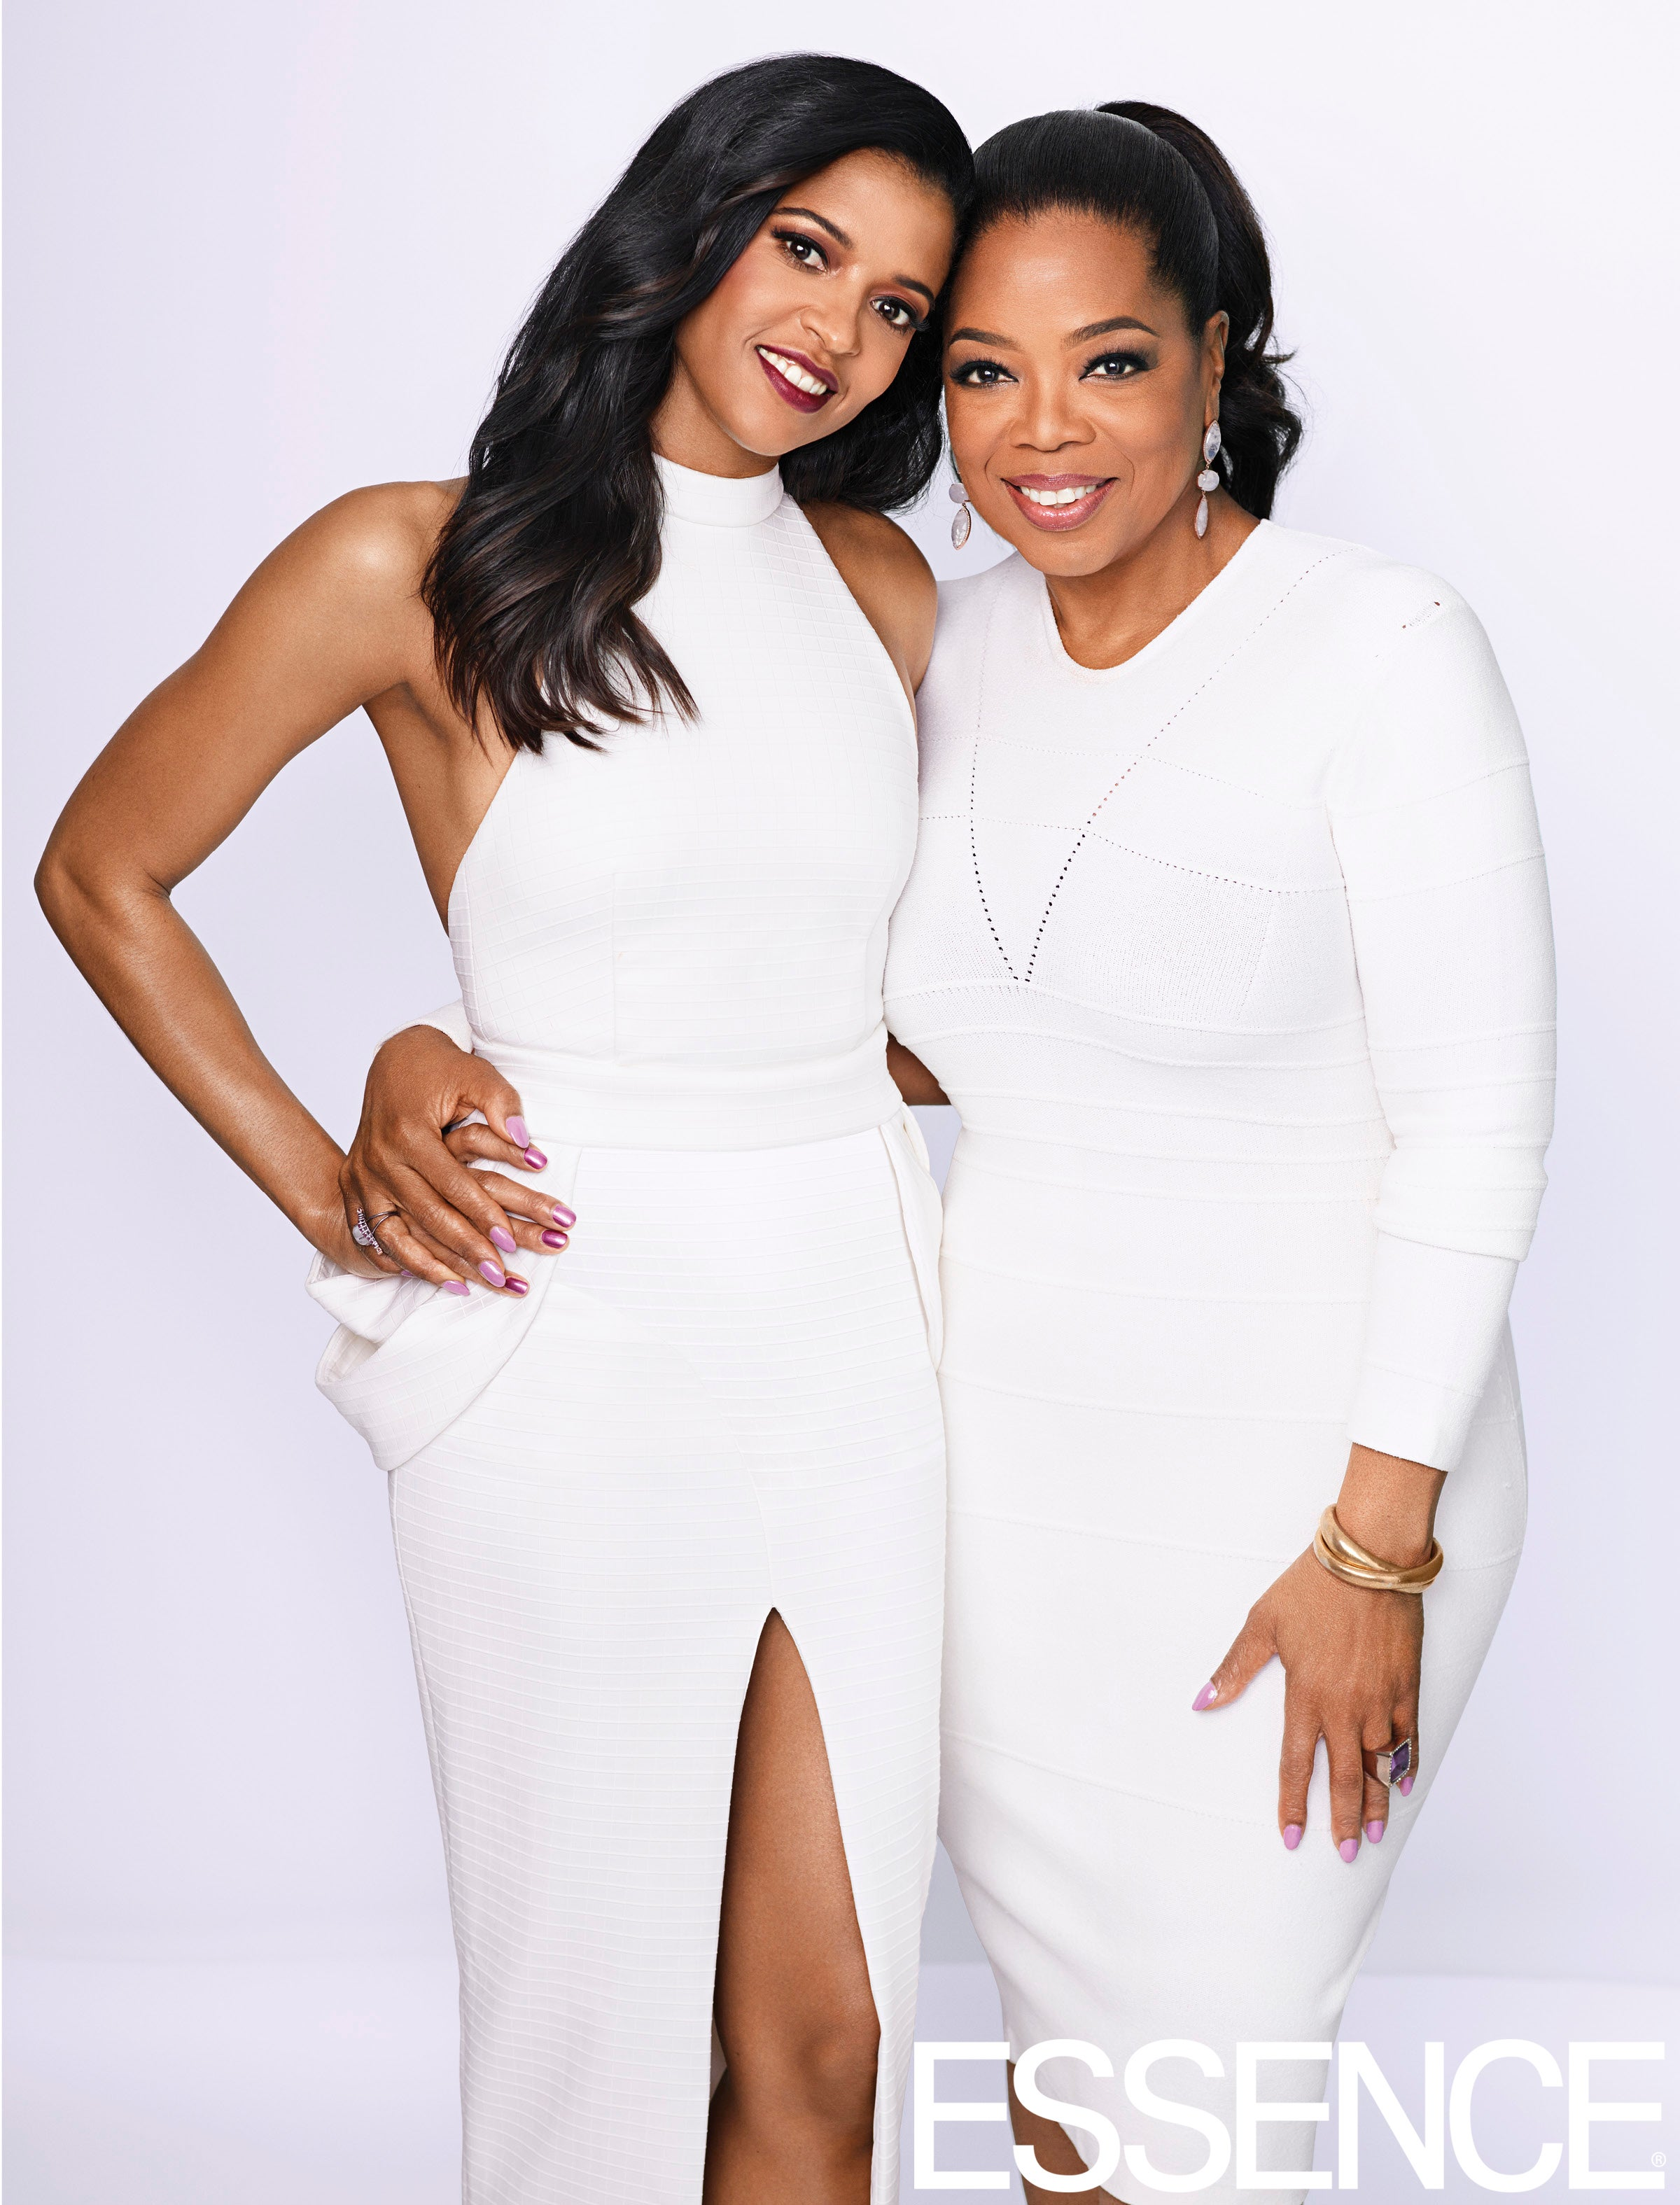 Oprah & Renee Elise Goldsberry Cover ESSENCE's April 2017 Issue